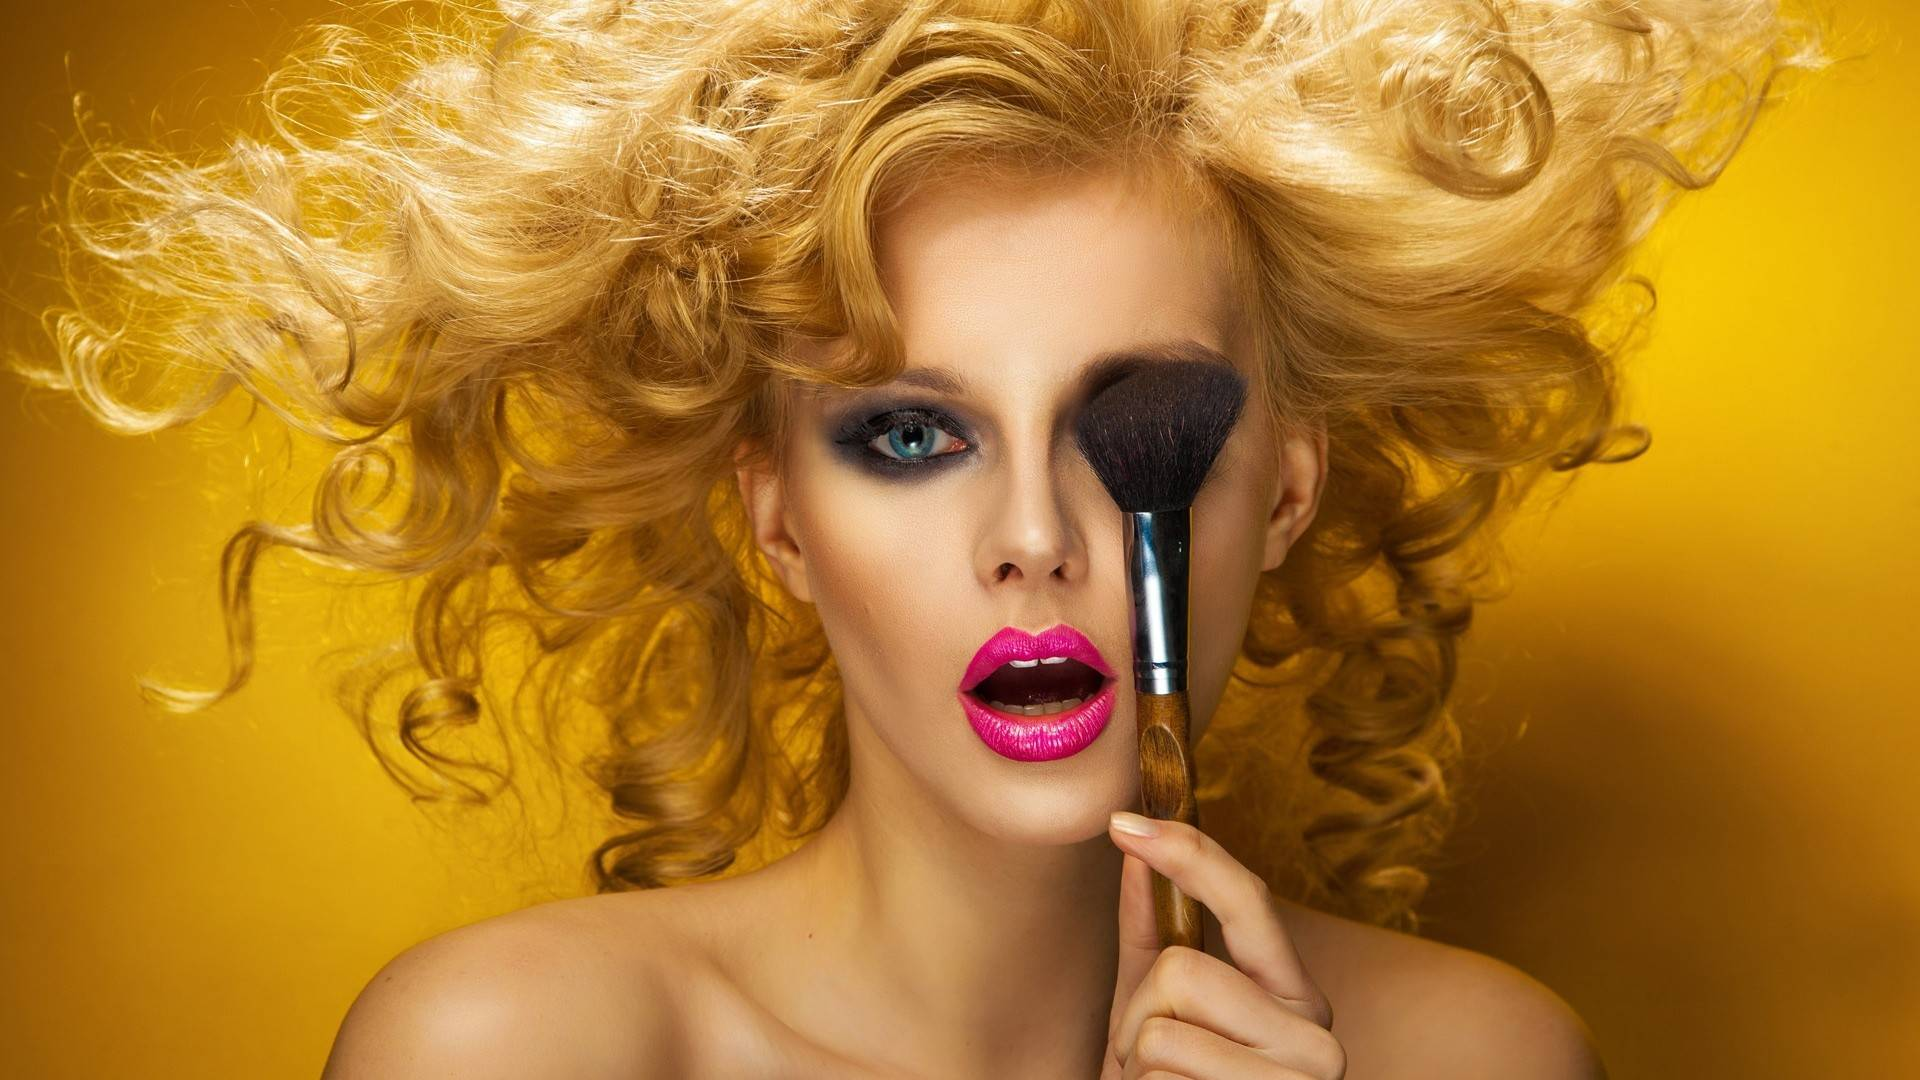 Makeup Wallpaper